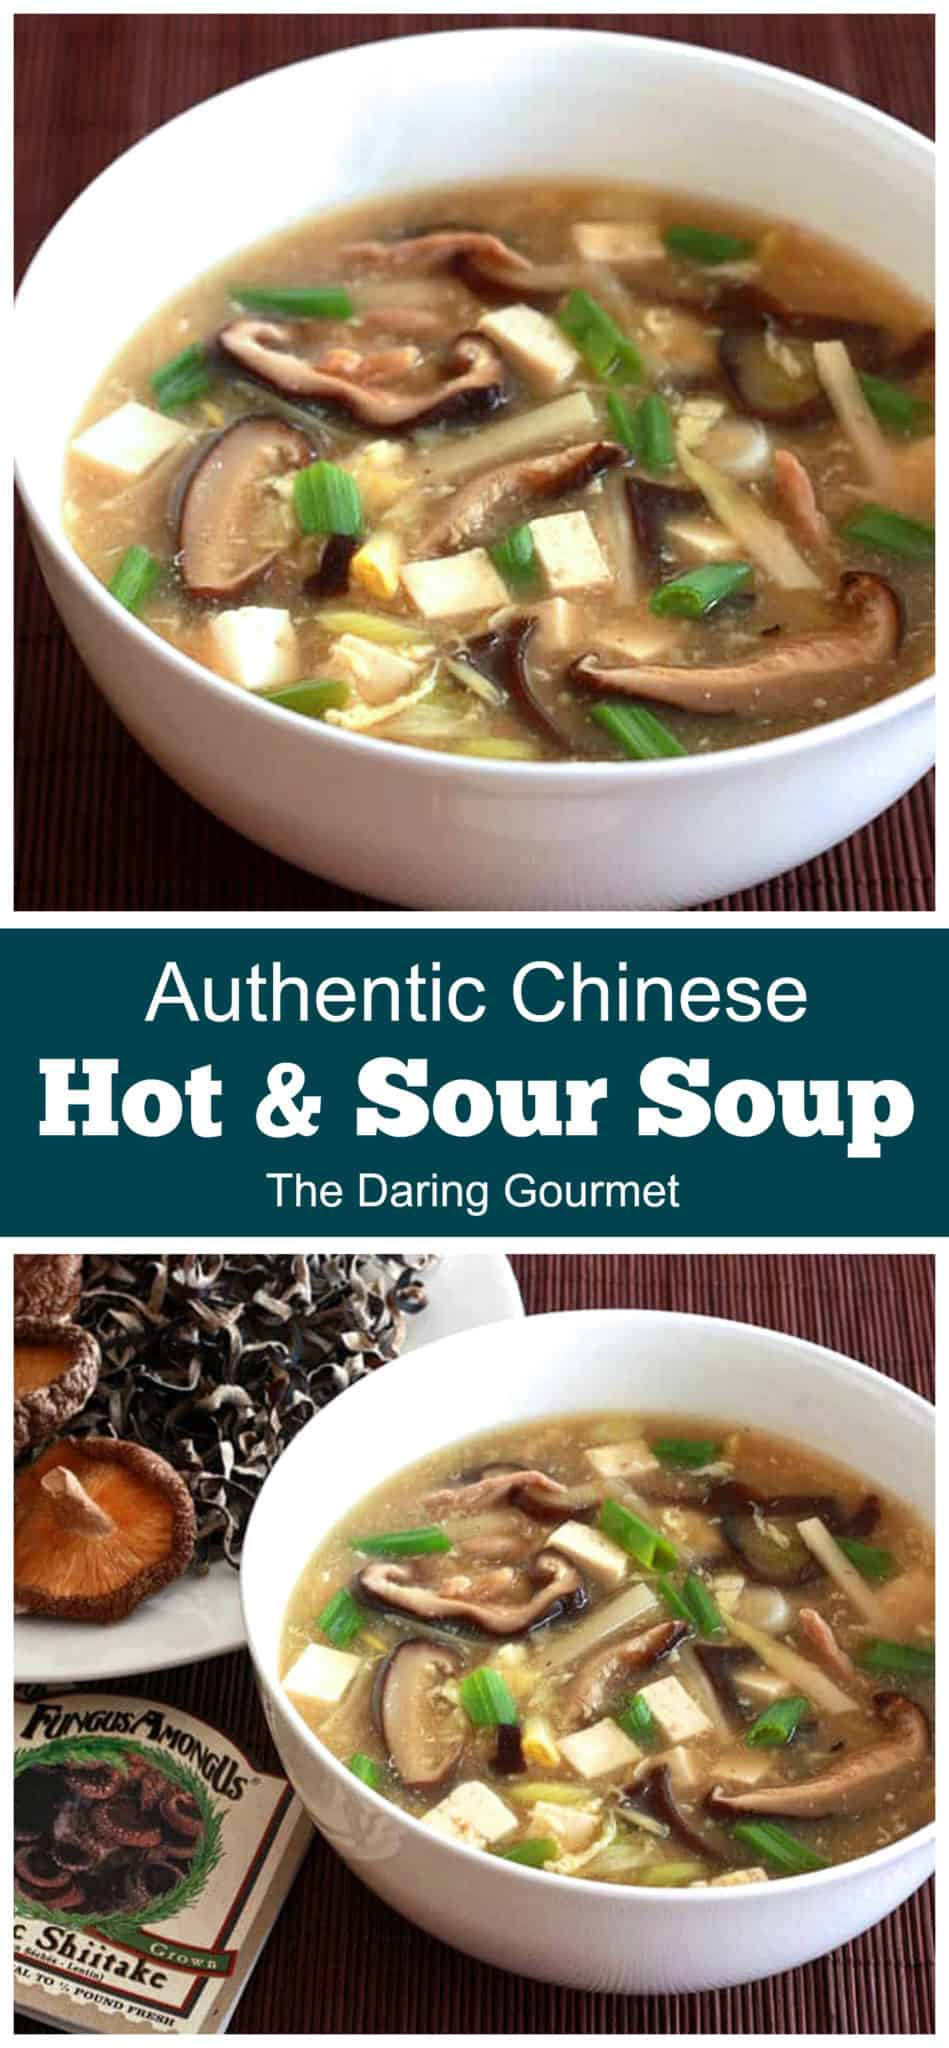 hot and sour soup recipe best authentic traditional Chinese homemade restaurant style